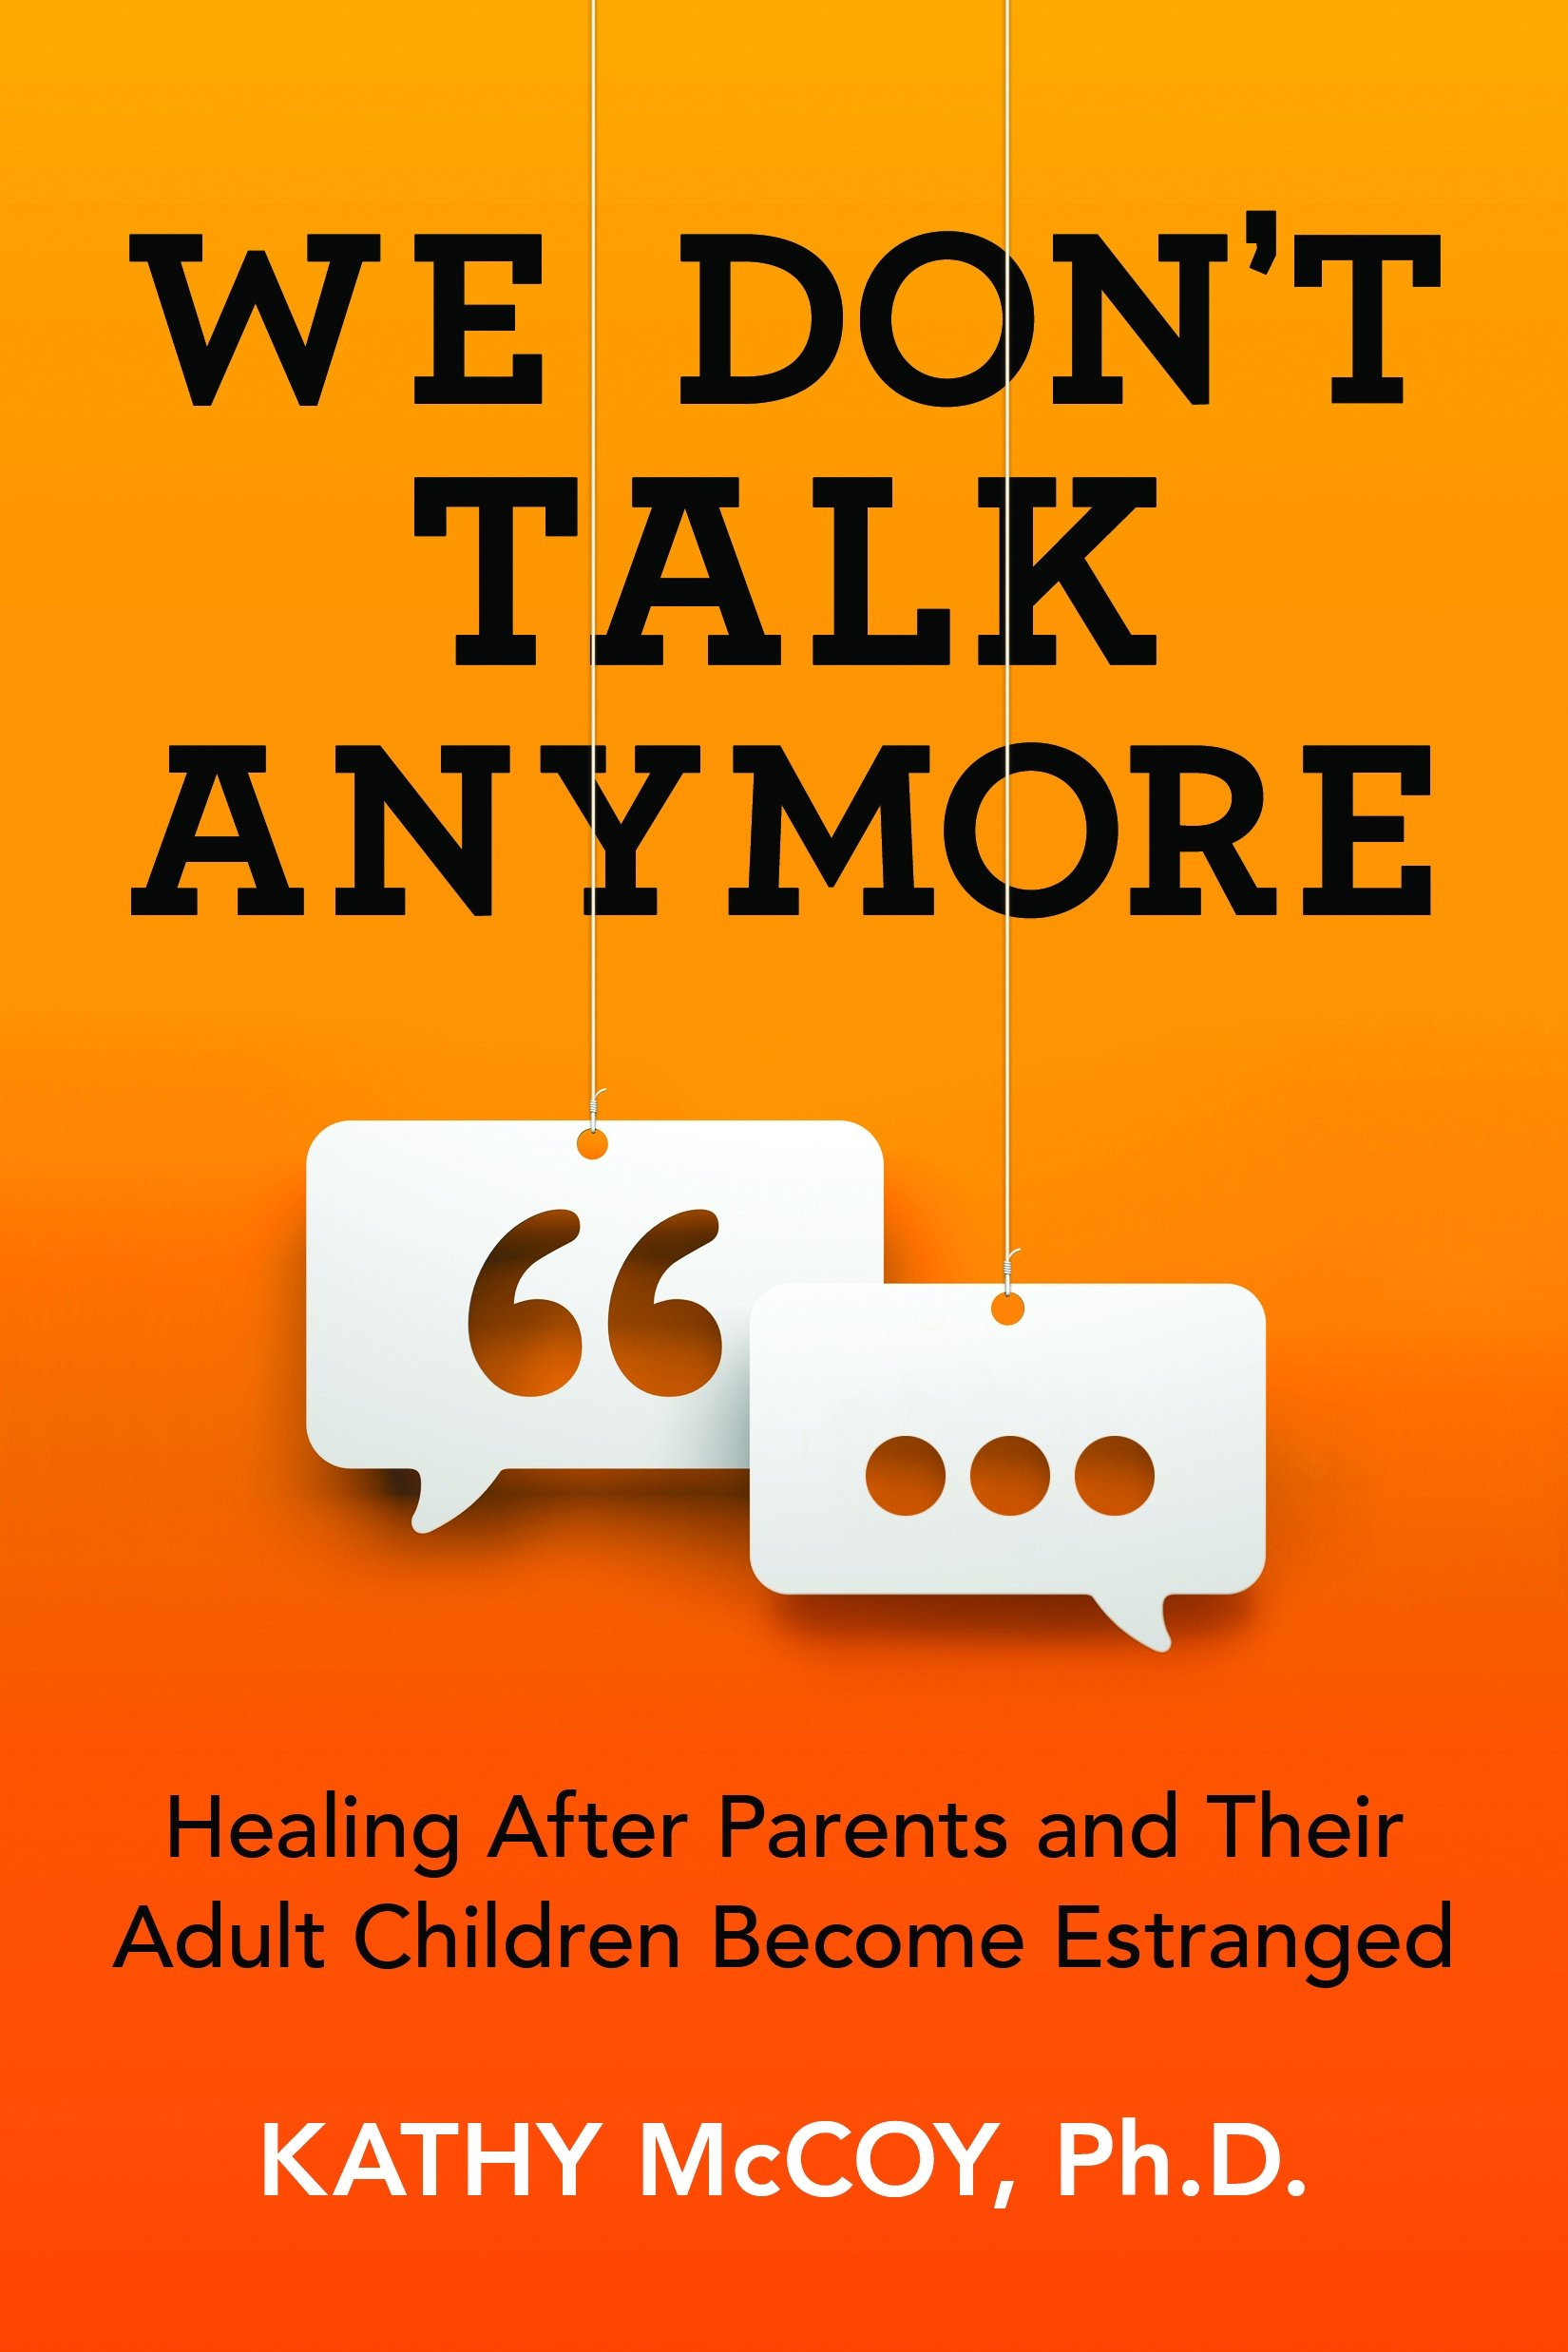 We Don't Talk Anymore: Healing after Parents and Their Adult Children  Become Estranged: Kathy McCoy: 9781492651130: Amazon.com: Books